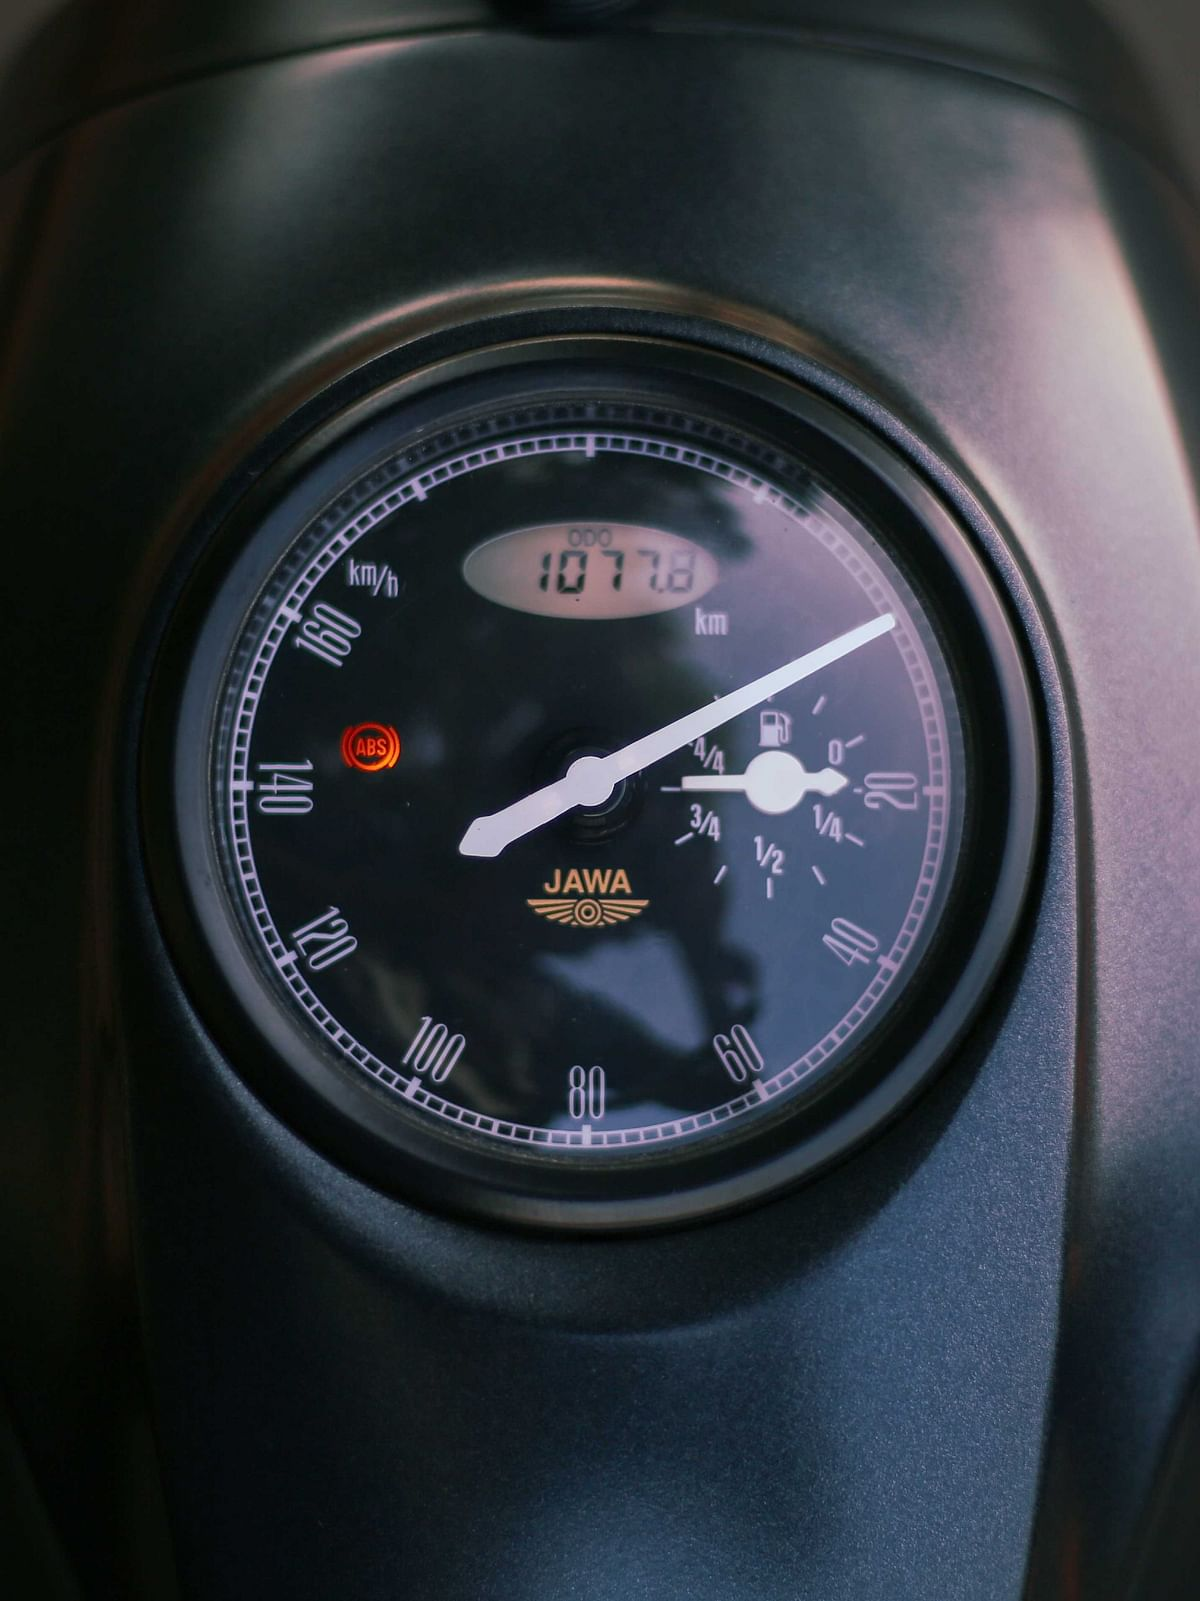 Anti-clockwise speedometer makes it difficult to read speeds between 60-100kmph